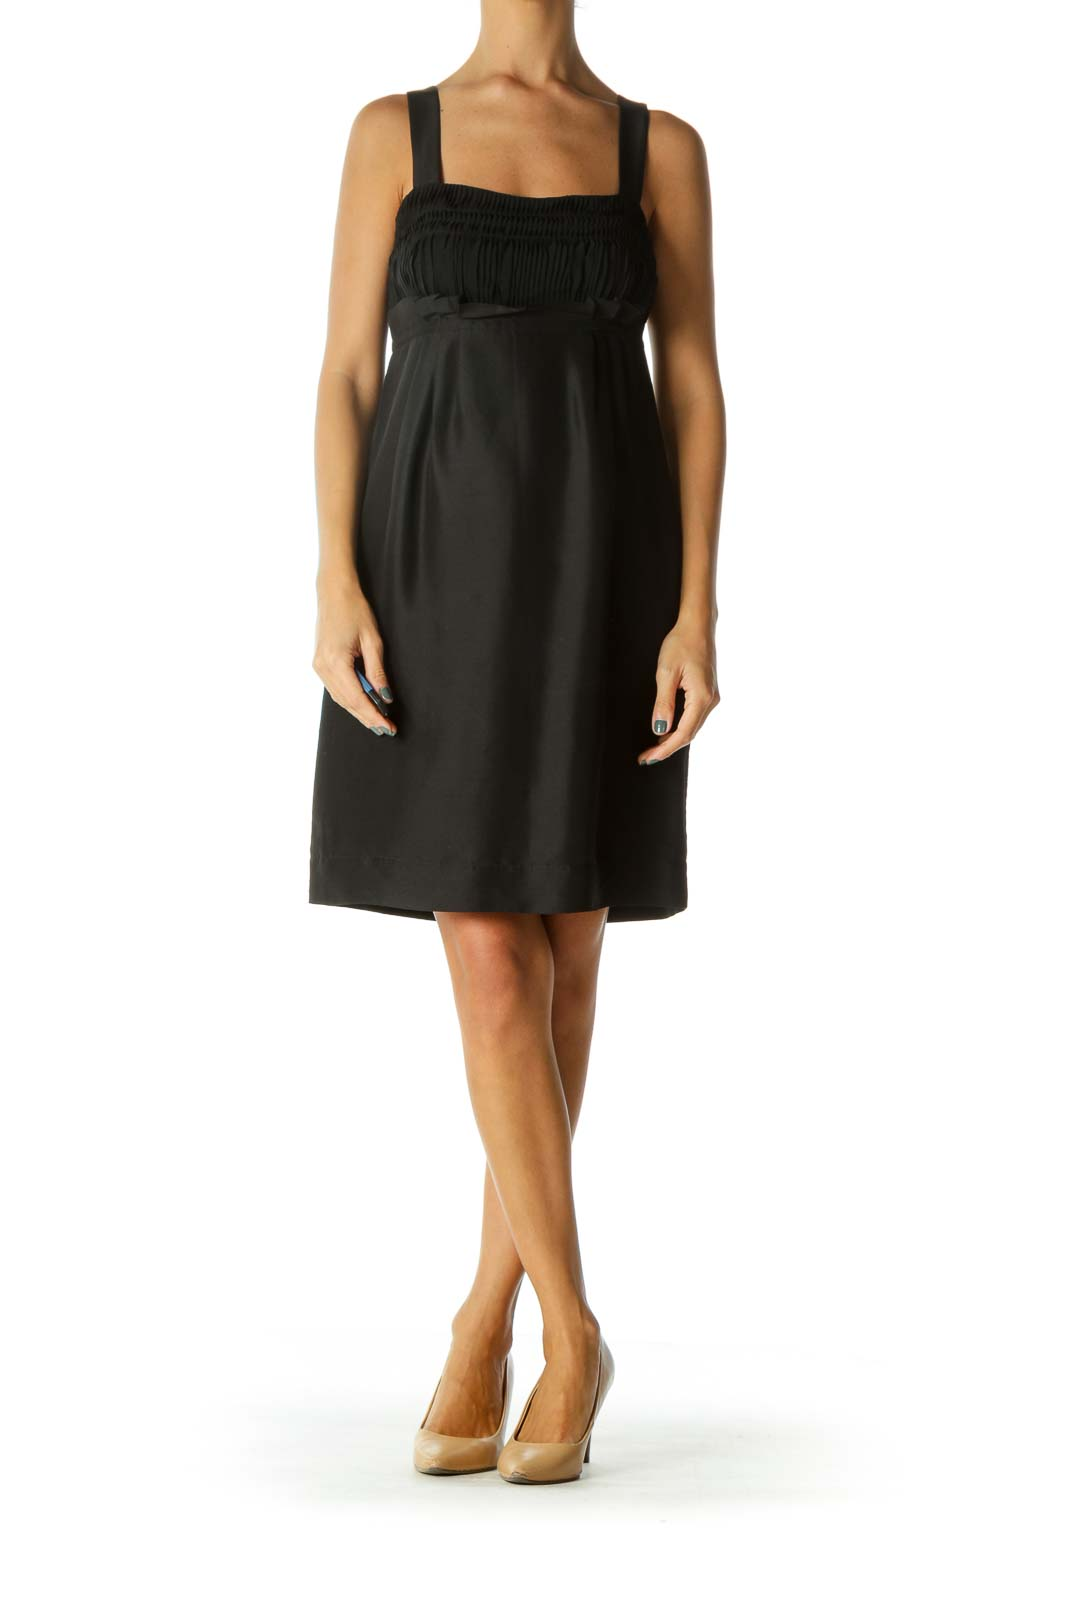 Black 100% Silk Pleated A-Line Sleeveless Cocktail Dress